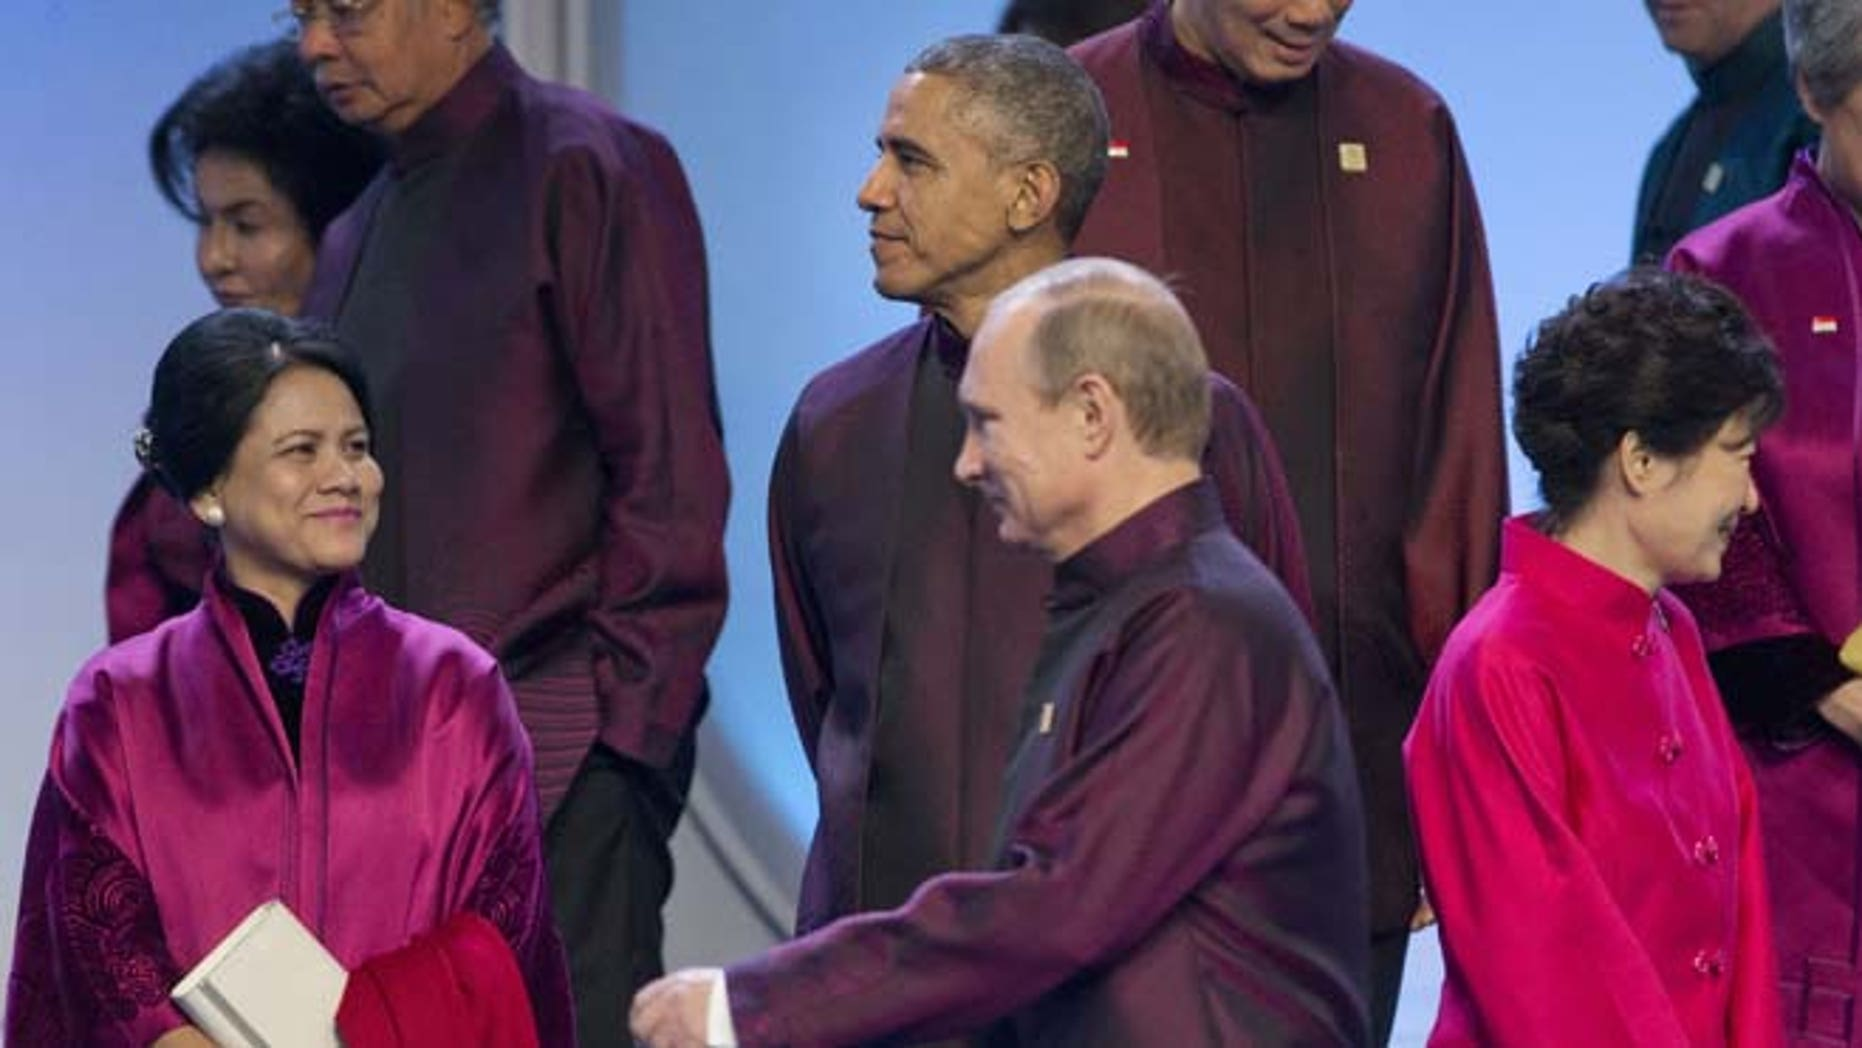 This Monday, Nov. 10, 2014 photo shows Russian President Vladimir Putin and President Barack Obama during the Asia-Pacific Economic Cooperation (APEC) Summit family photo in Beijing.